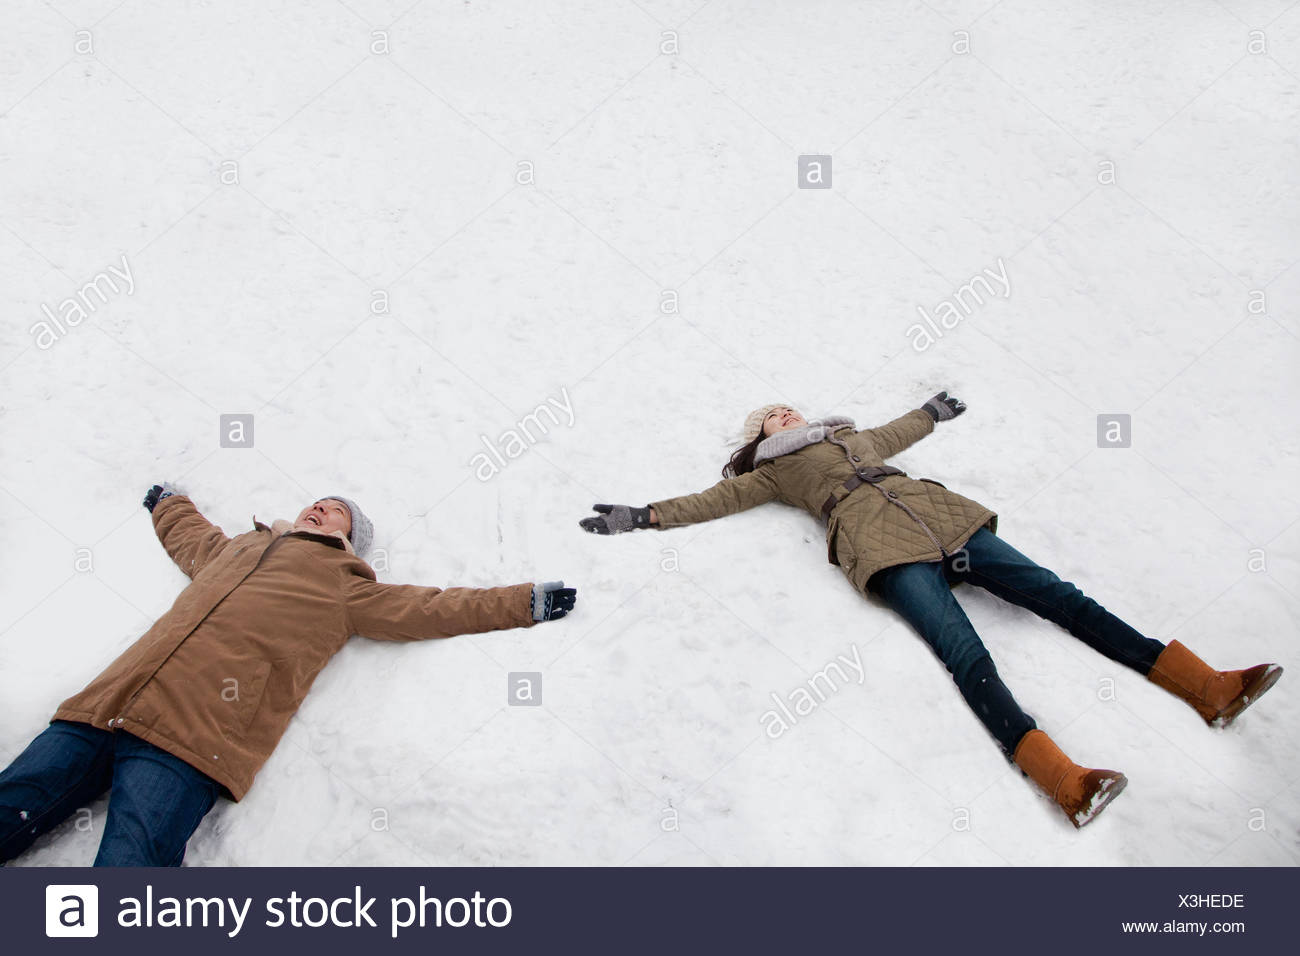 Jeune couple laying in snow making snow angels Photo Stock